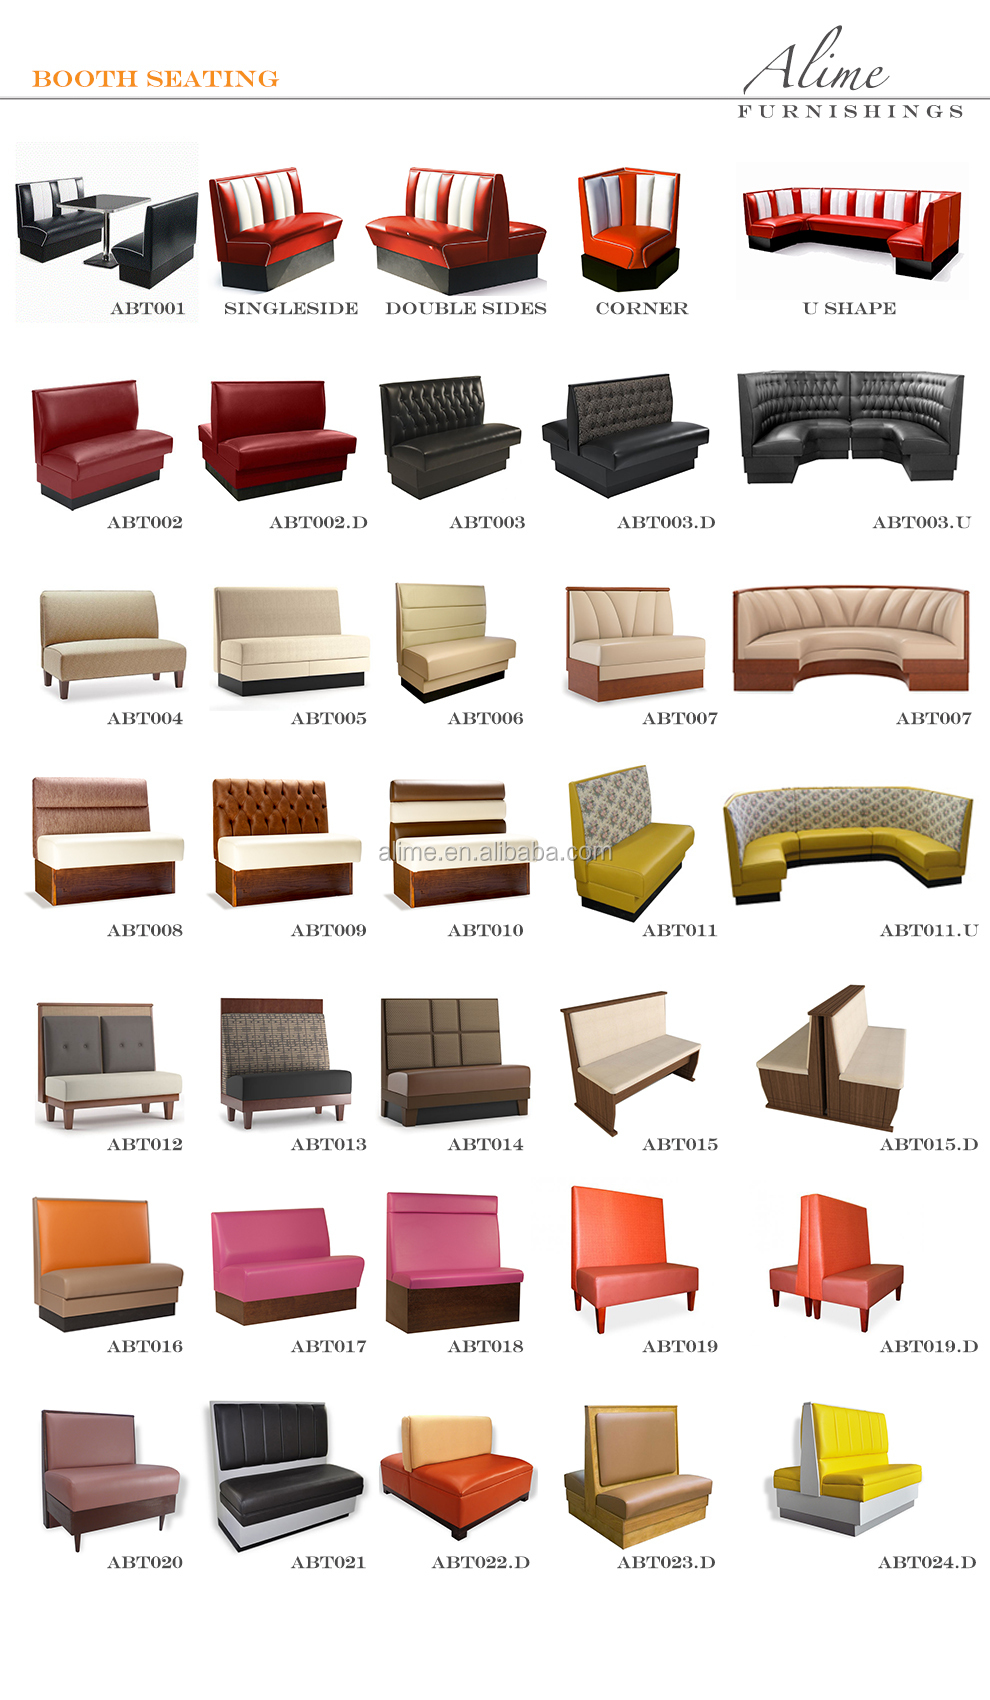 Alime Dinner Booth Seats Bench Seating Restaurant Tables And Chairs Buy Dinner Booth Seats Bench Seating Restaurant Tables And Chairs Product On Alibaba Com